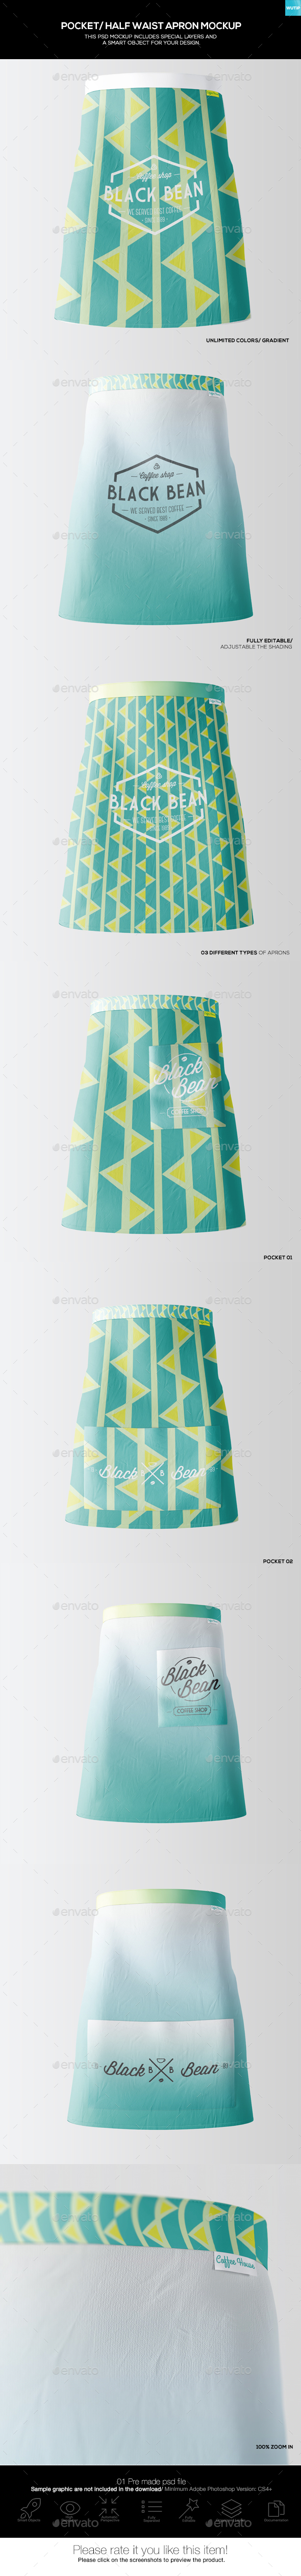 Half Waist Apron Mockup (3 Types)-02 - Miscellaneous Apparel